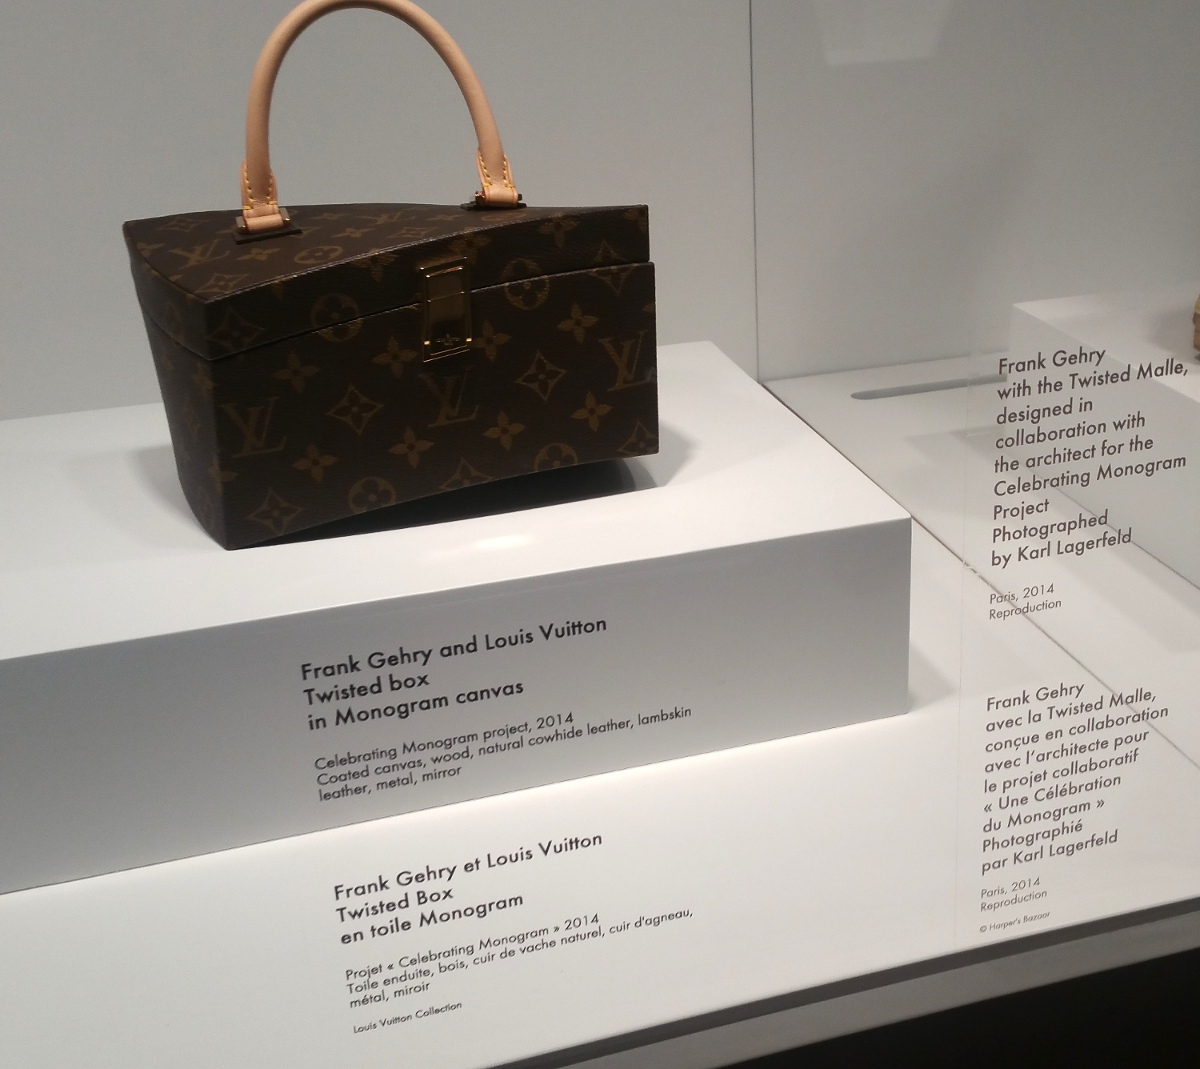 1f226dd44656b3 The Frank Gehry x Louis Vuitton  Twisted Box  was part of the Monogram  project